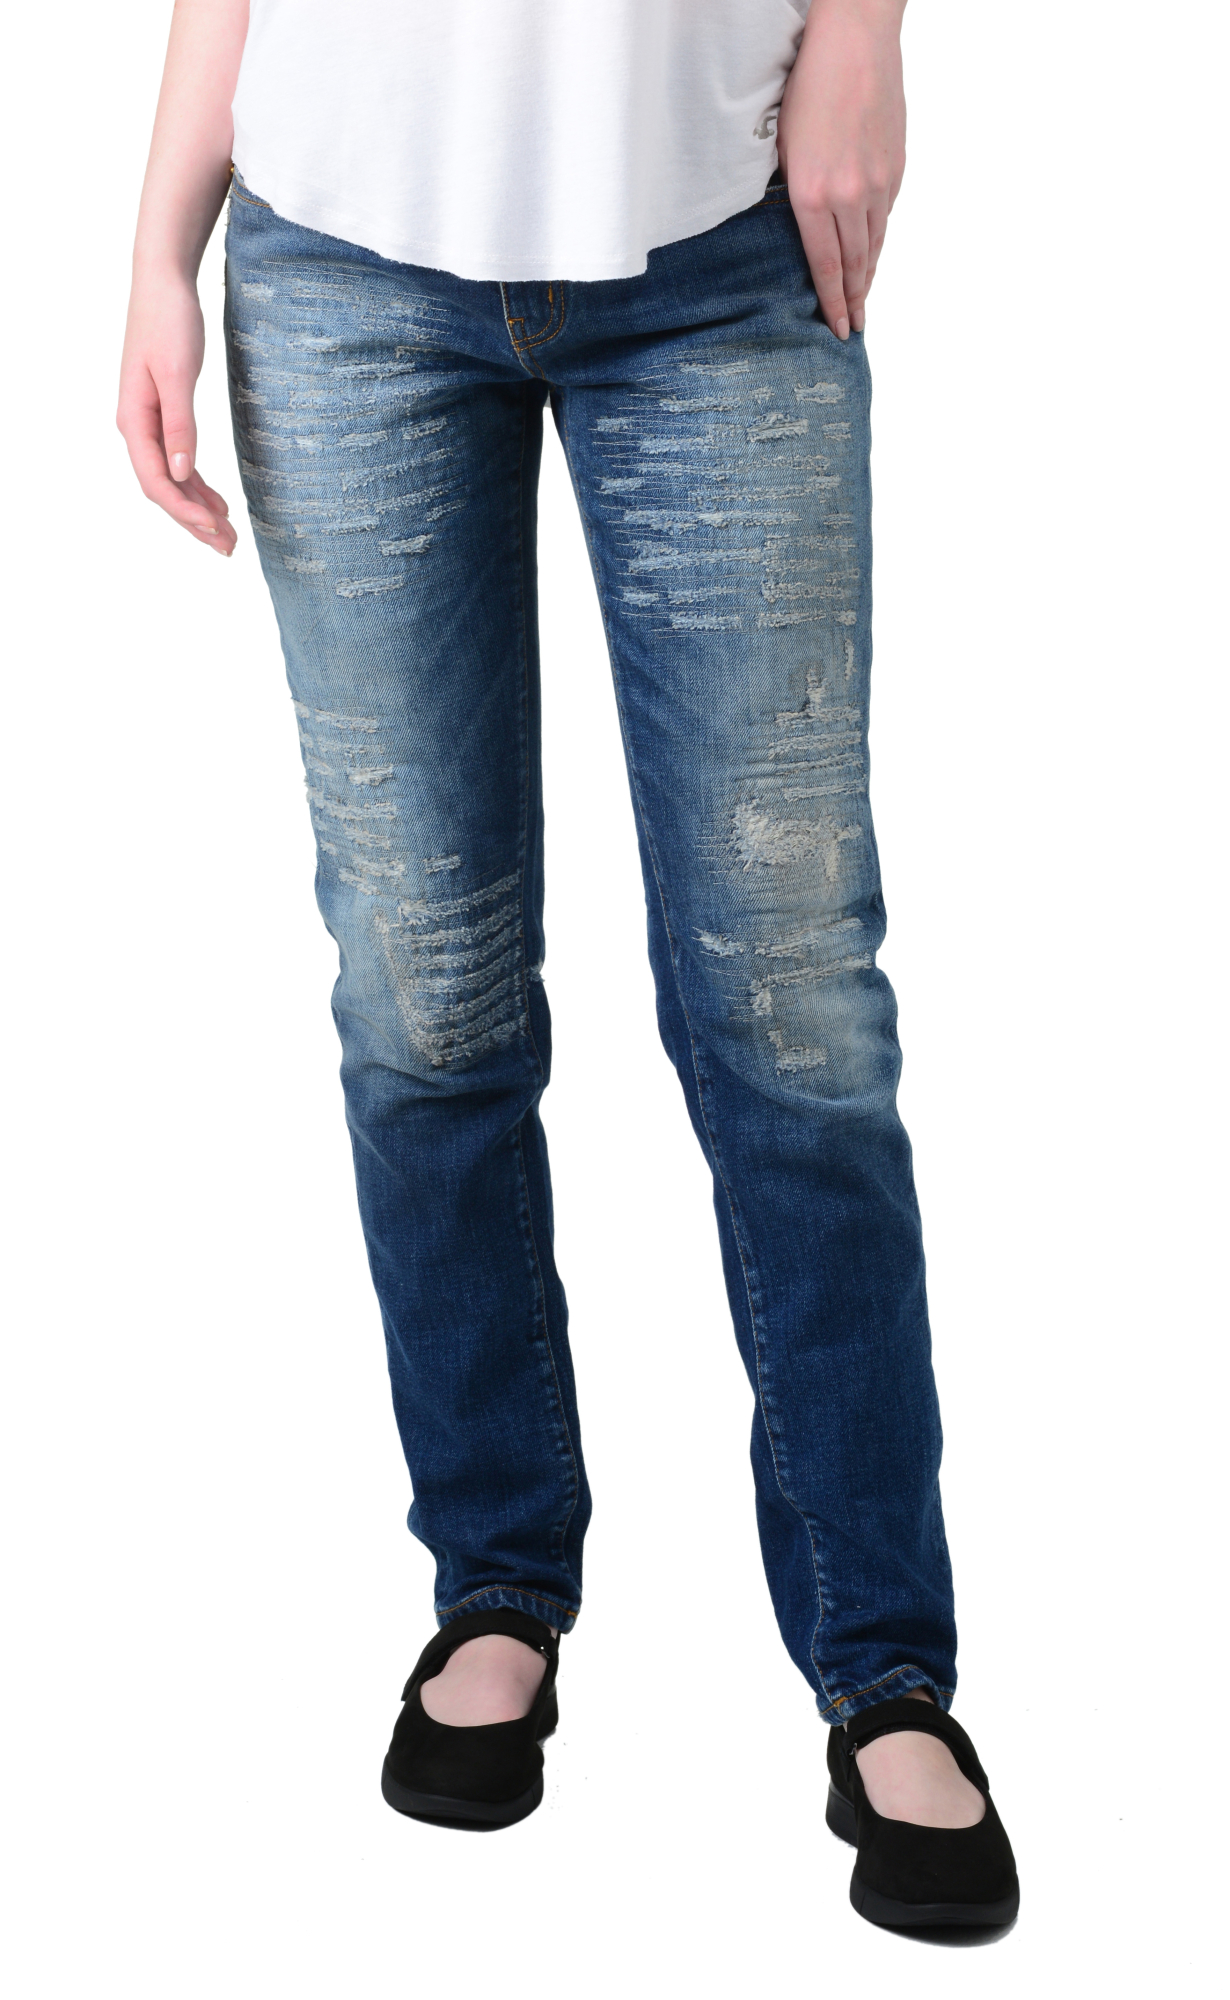 Image of Roberto Cavalli Jeans, Distressed Detailing, Gold Metallic Logo - 6 US / 42 EU - Blue